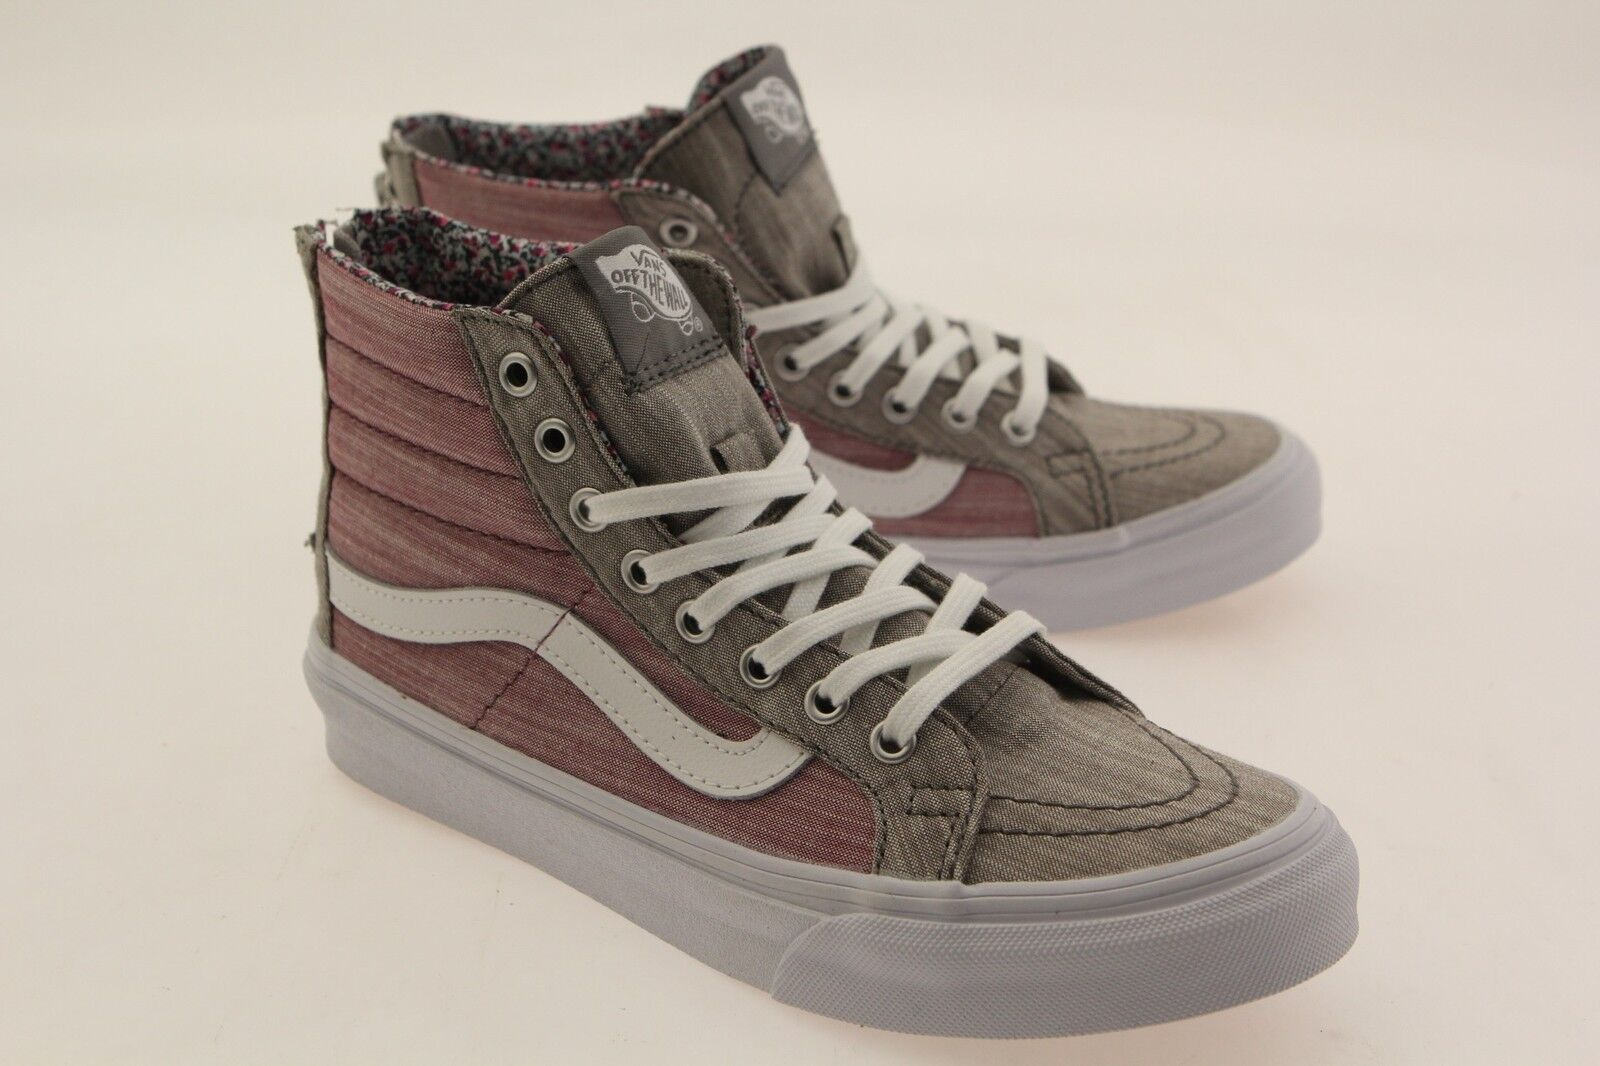 Vans Women Sk8-Hi Chambray Slim Zip - Floral Chambray Sk8-Hi gray true white VN0XH8IE0 ddf39a